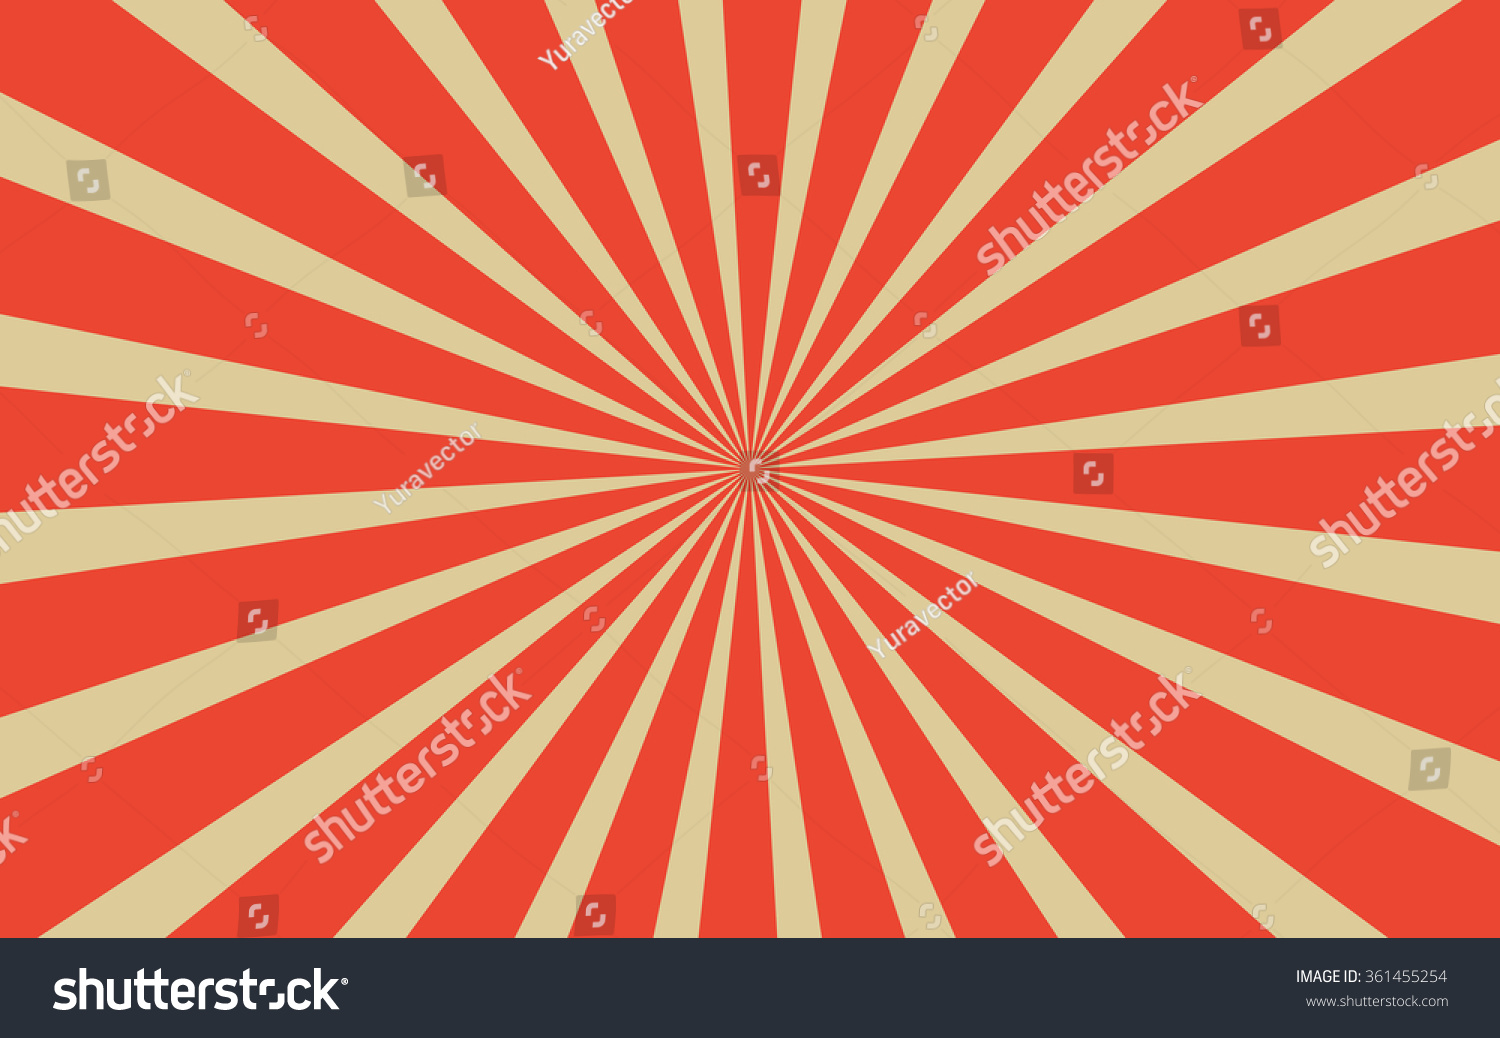 Vintage Red Radial Lines Background Rectangle Stock Vector ...